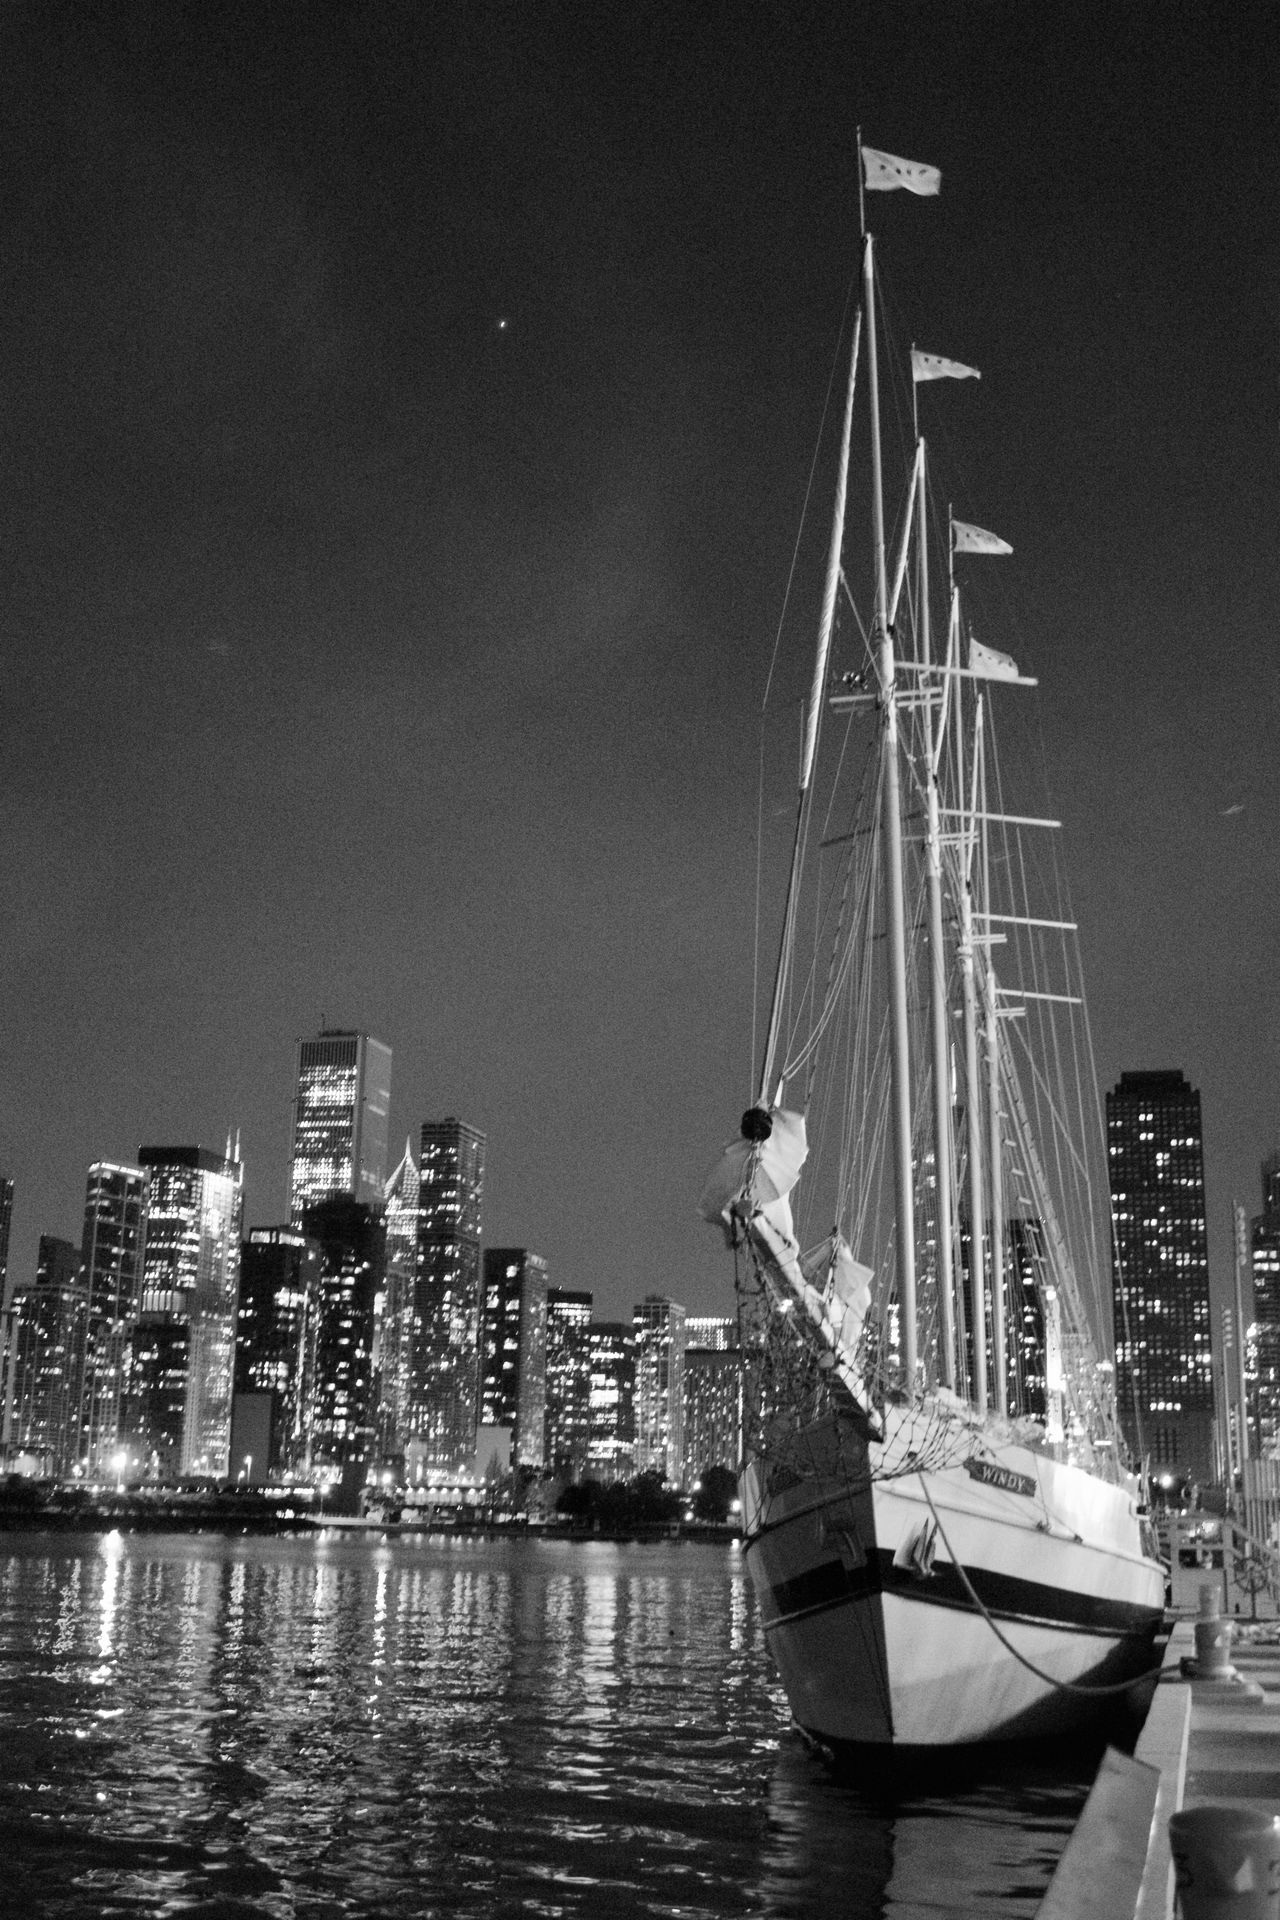 Black And White Photography Cityscape From The Pier Nighttime Nighttime Cityscape Sailboat Sailboat At Night Skyline Skyline Chicago